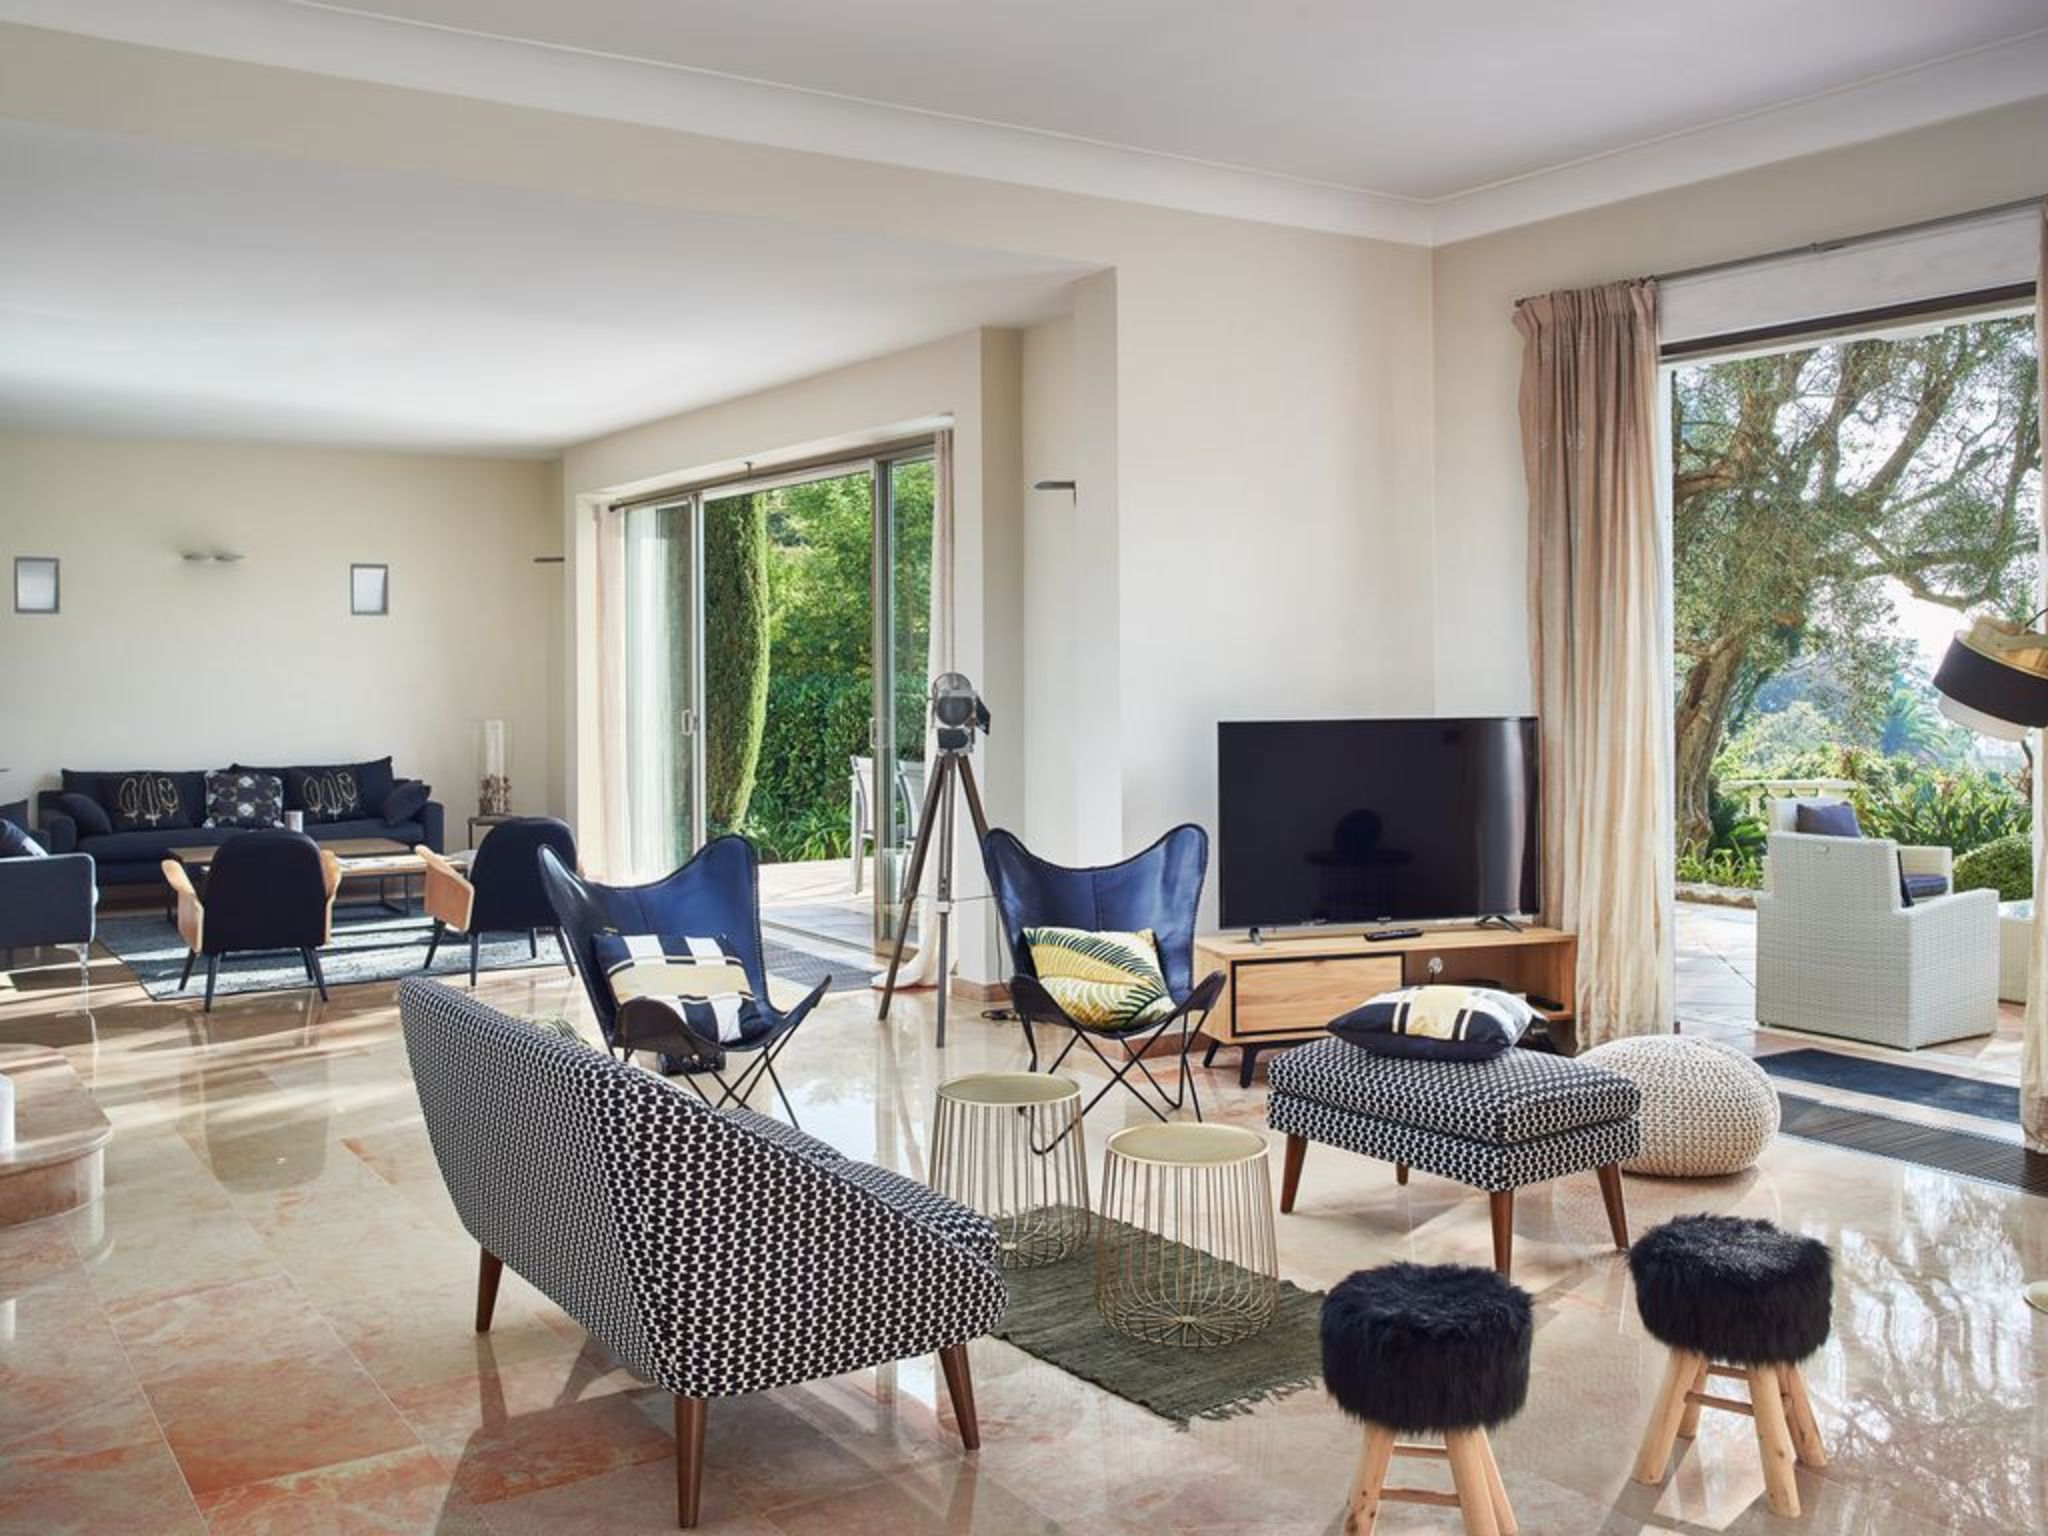 Apartment VILLA CALIFORNIE - QUARTIER CALIFORNIE A CANNES AVEC PISCINE photo 20454293